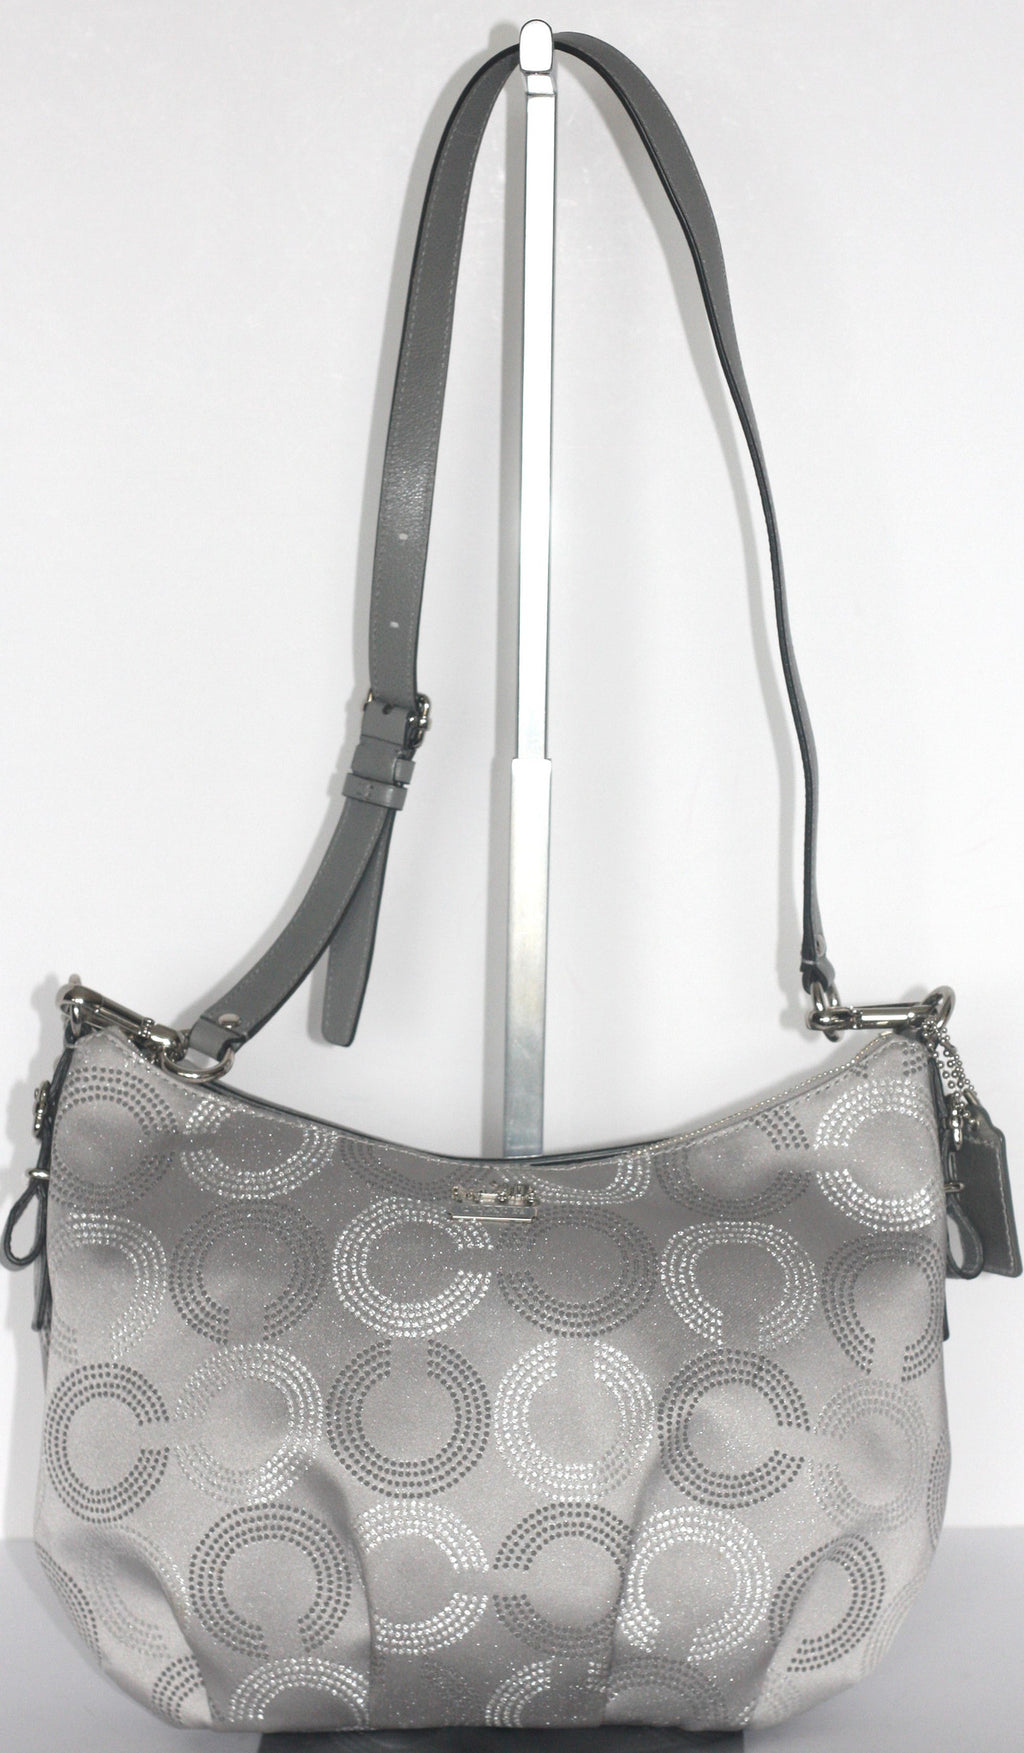 Brand New coach Silver & Grey Monogram Canvas Satchel - Joyce's Closet  - 1